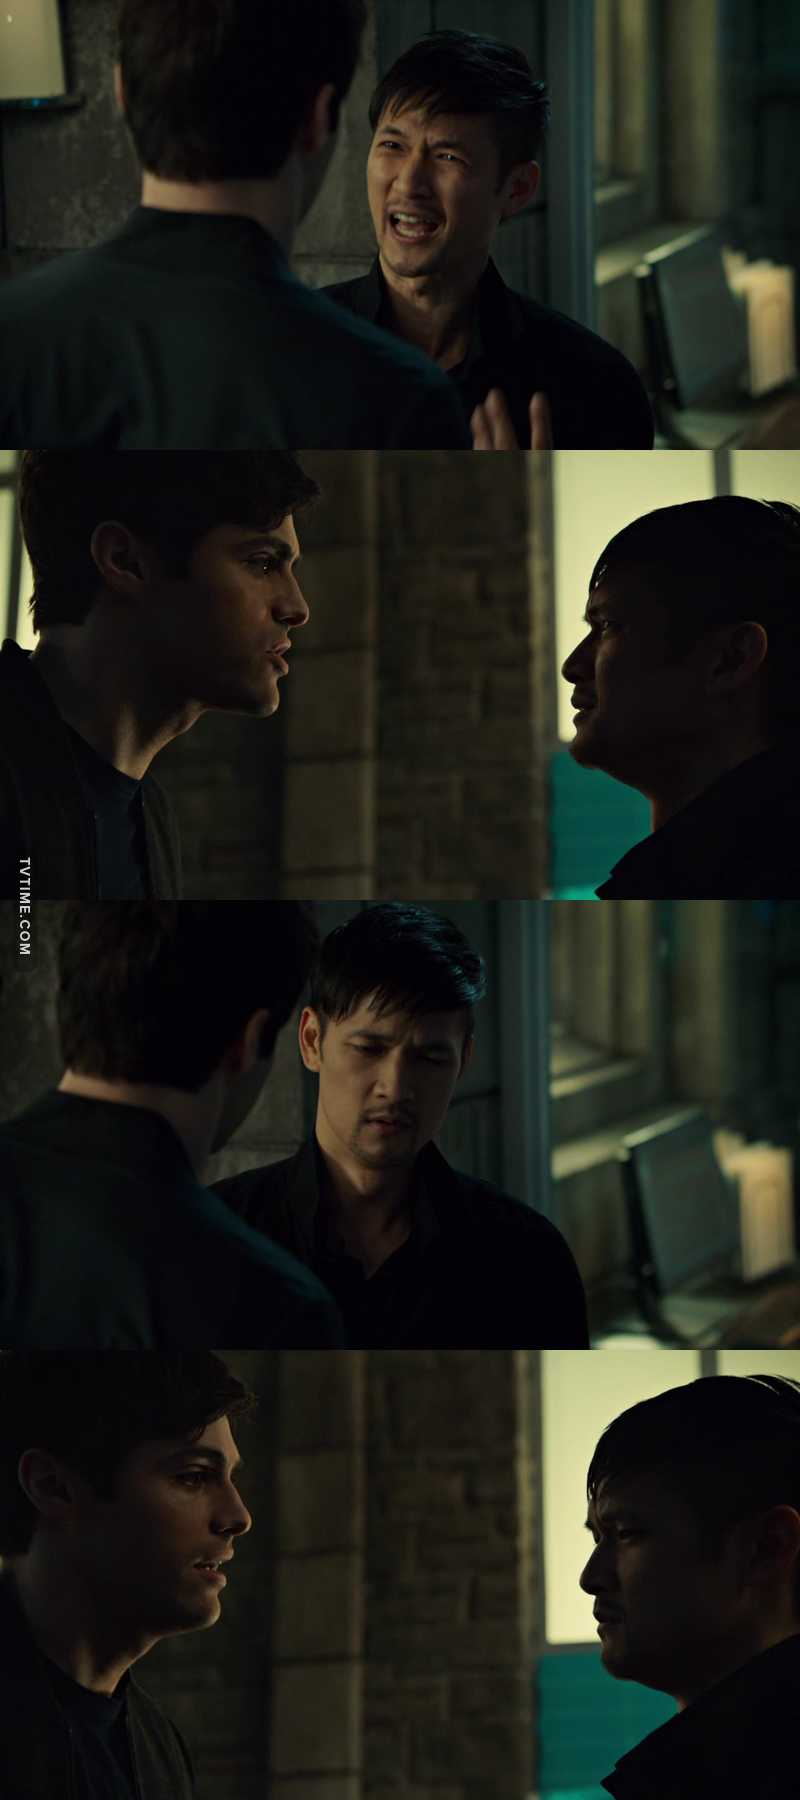 It hurts to see Magnus like that..